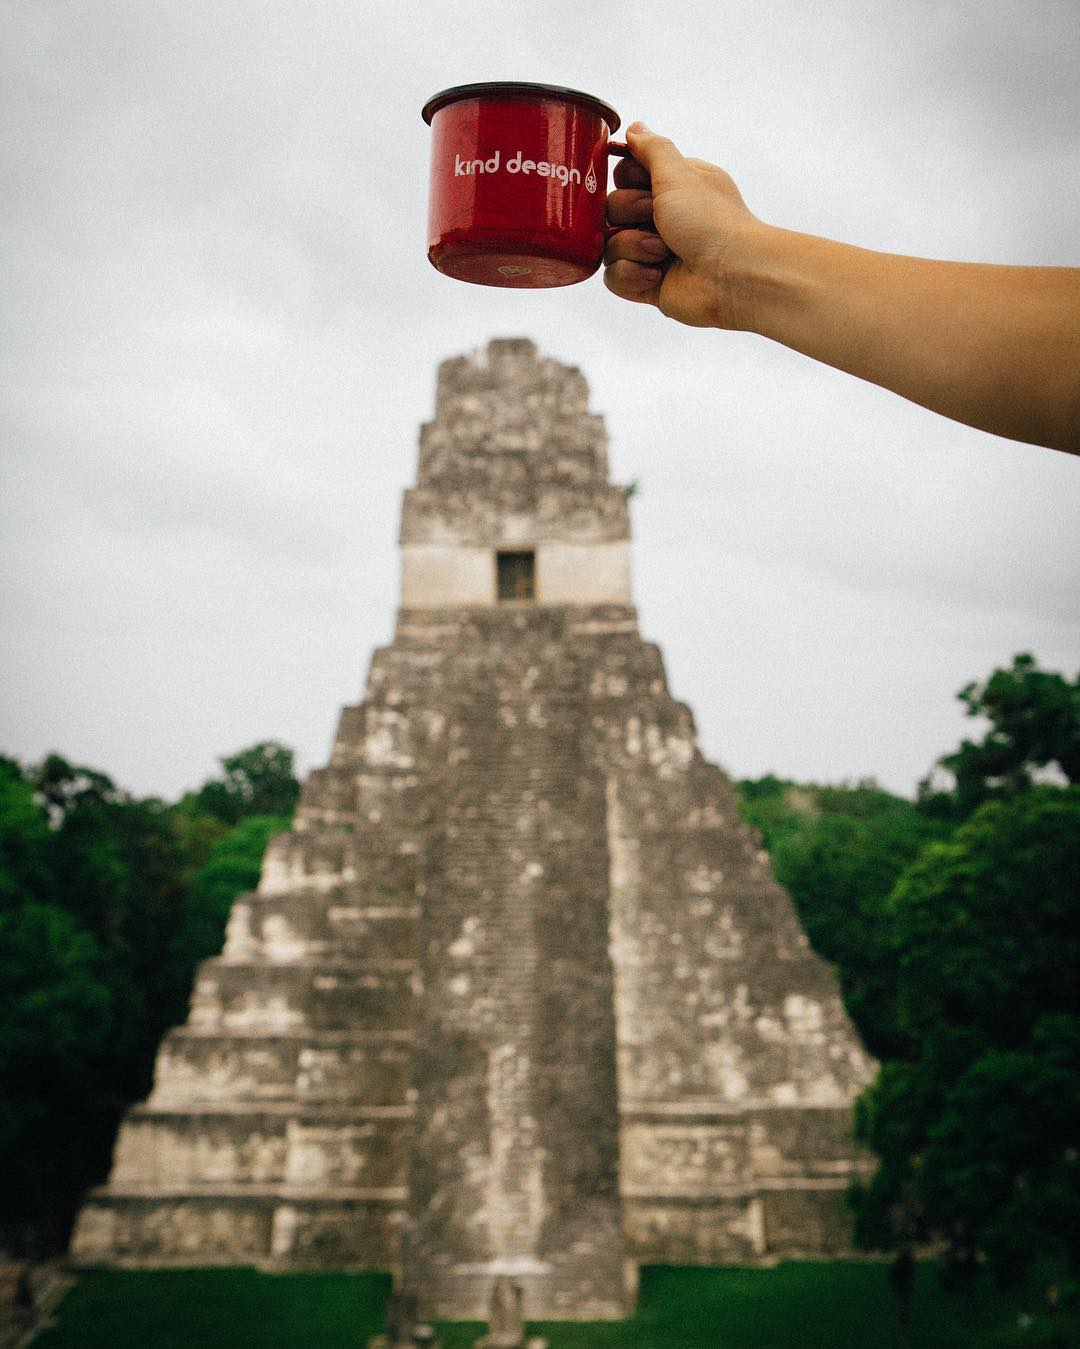 Cheers... To exploring the world!  Thanks for the shot from Tikal @ksundman